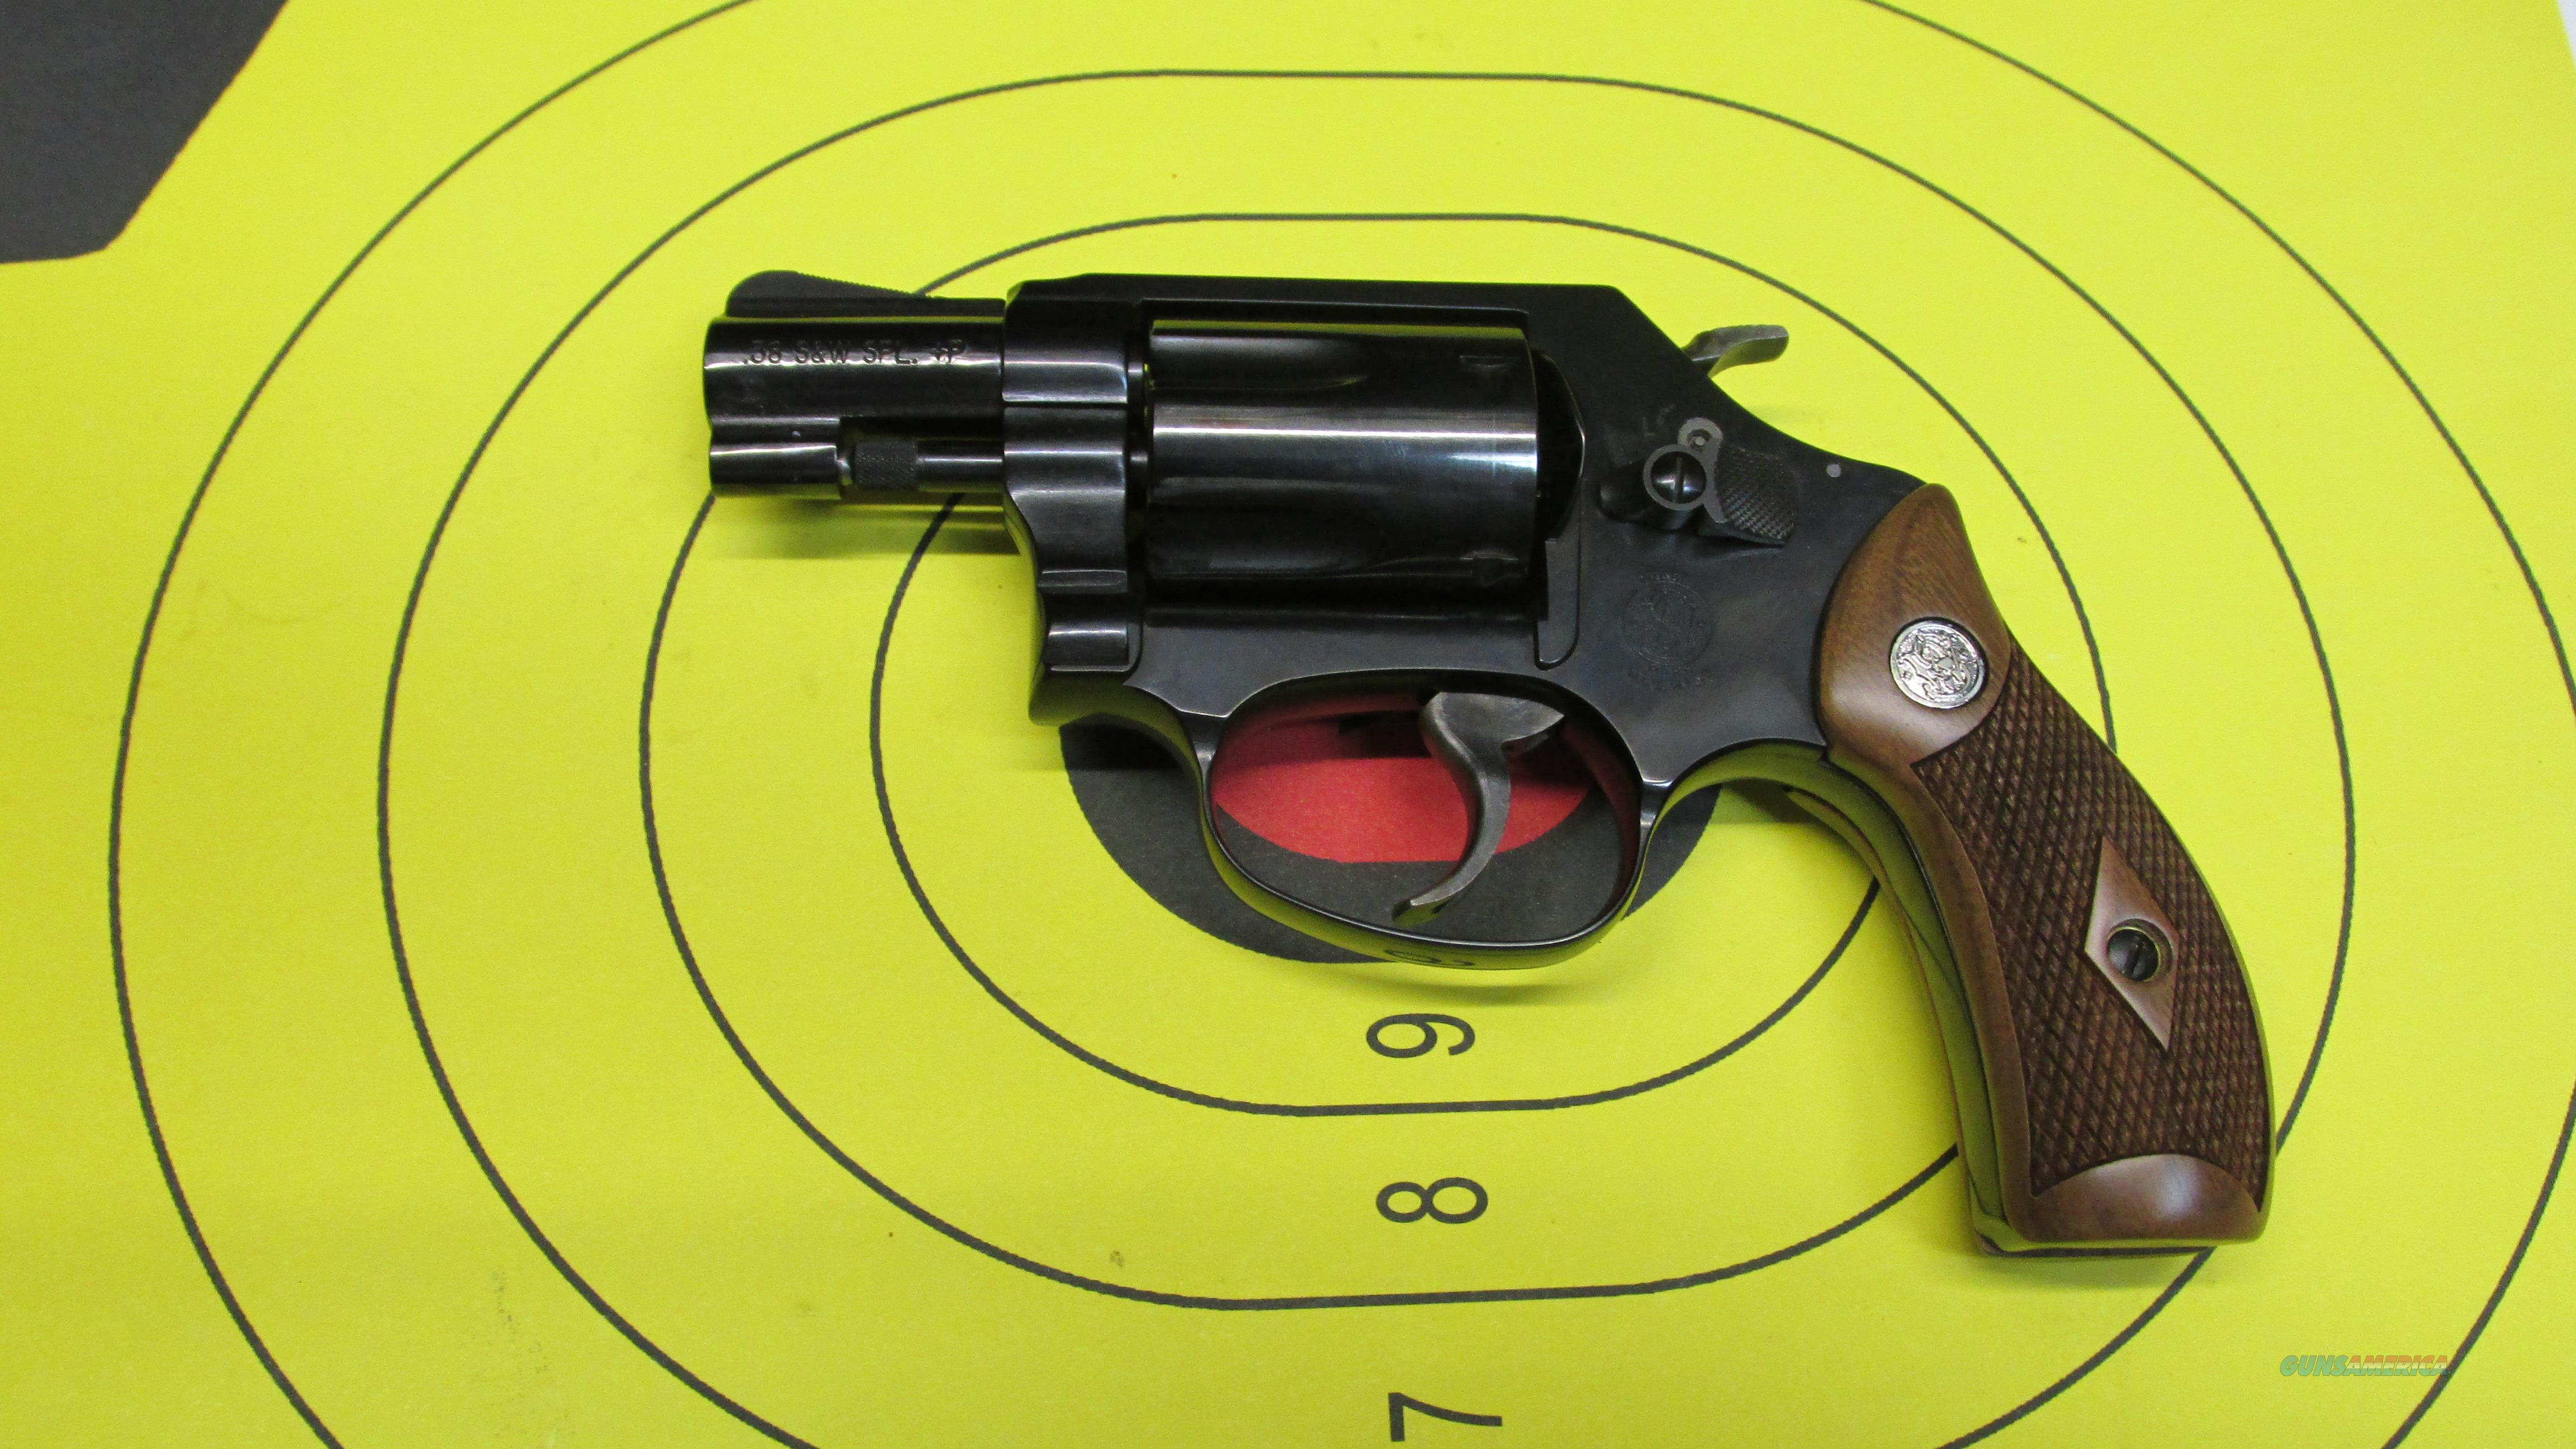 "SMITH & WESSON 36-10 5 SHOT .38 SPECIAL+P REVOLVER, 1.875"" BARREL  Guns > Pistols > Smith & Wesson Revolvers > Small Frame ( J )"